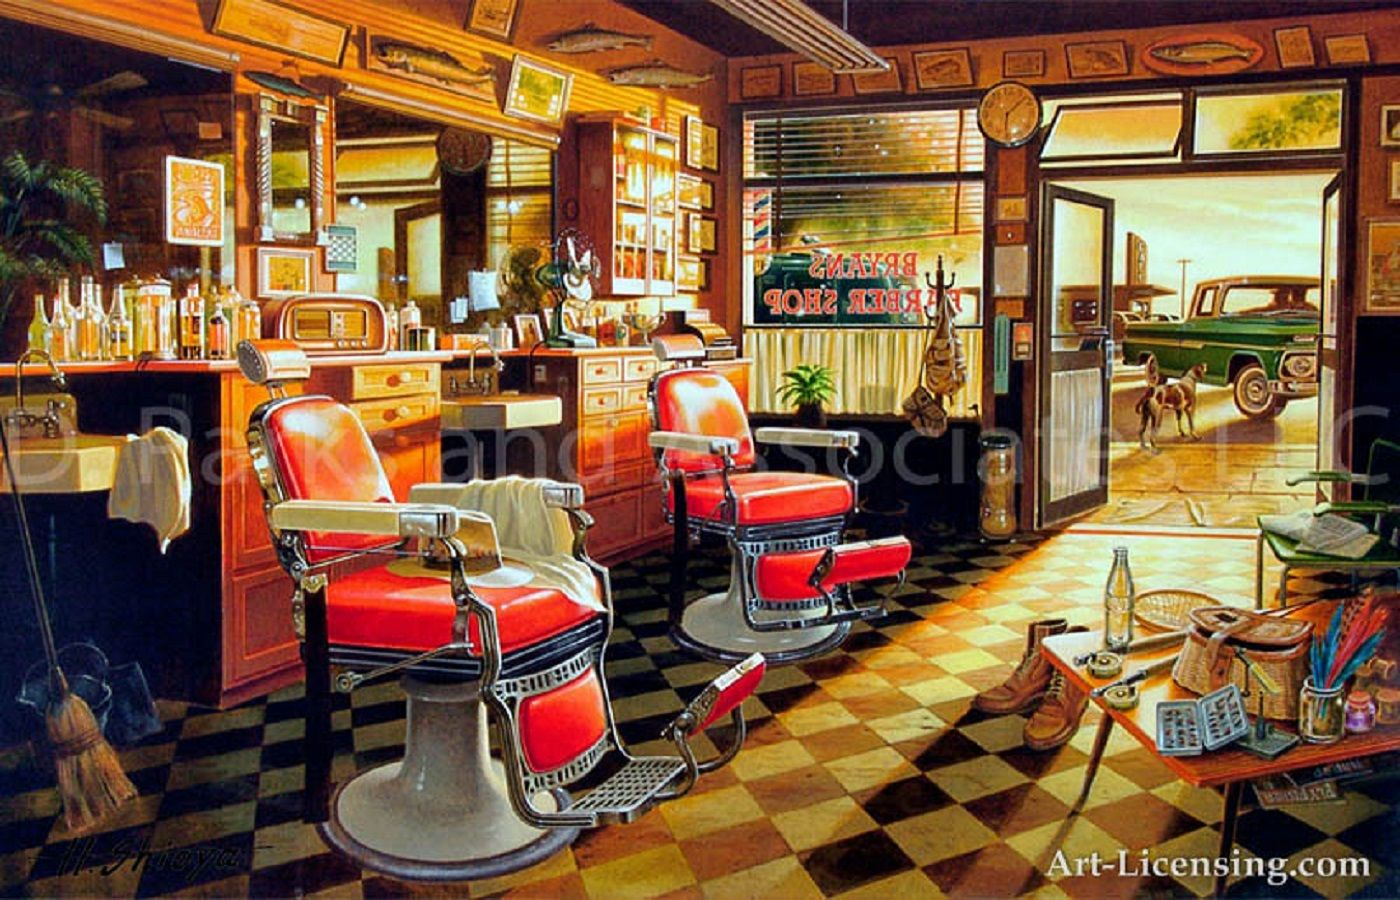 Barber shop Download HD Wallpapers and Free Images | Download ...